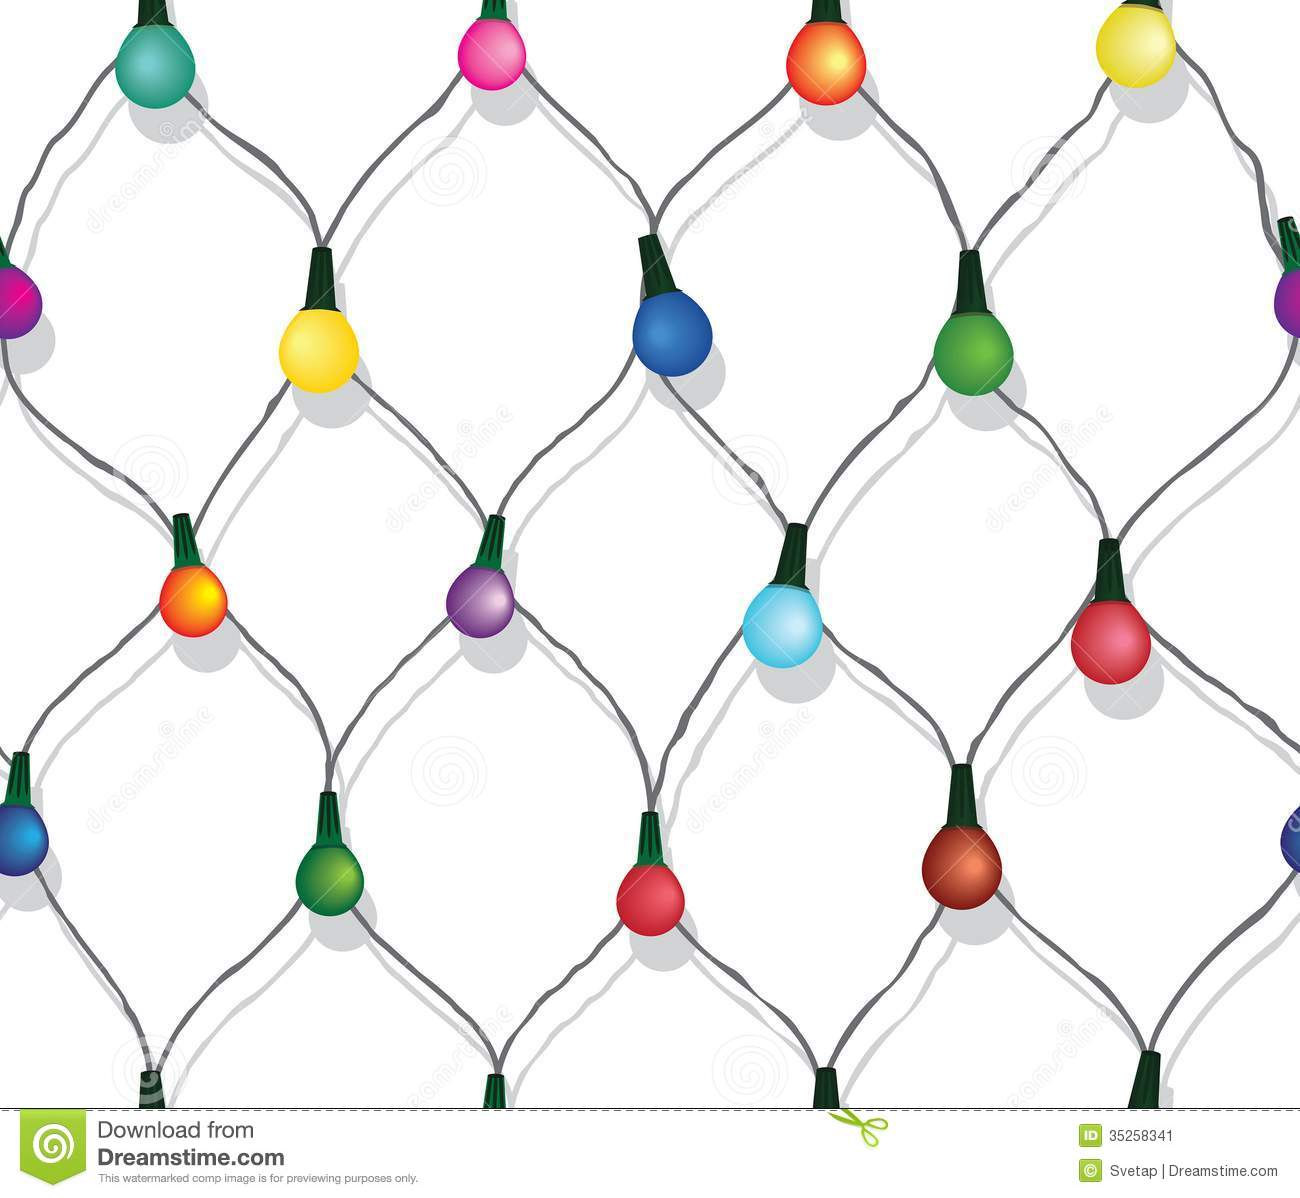 Seamless String Of Christmas Lights On Garland Vector Background Isolated White